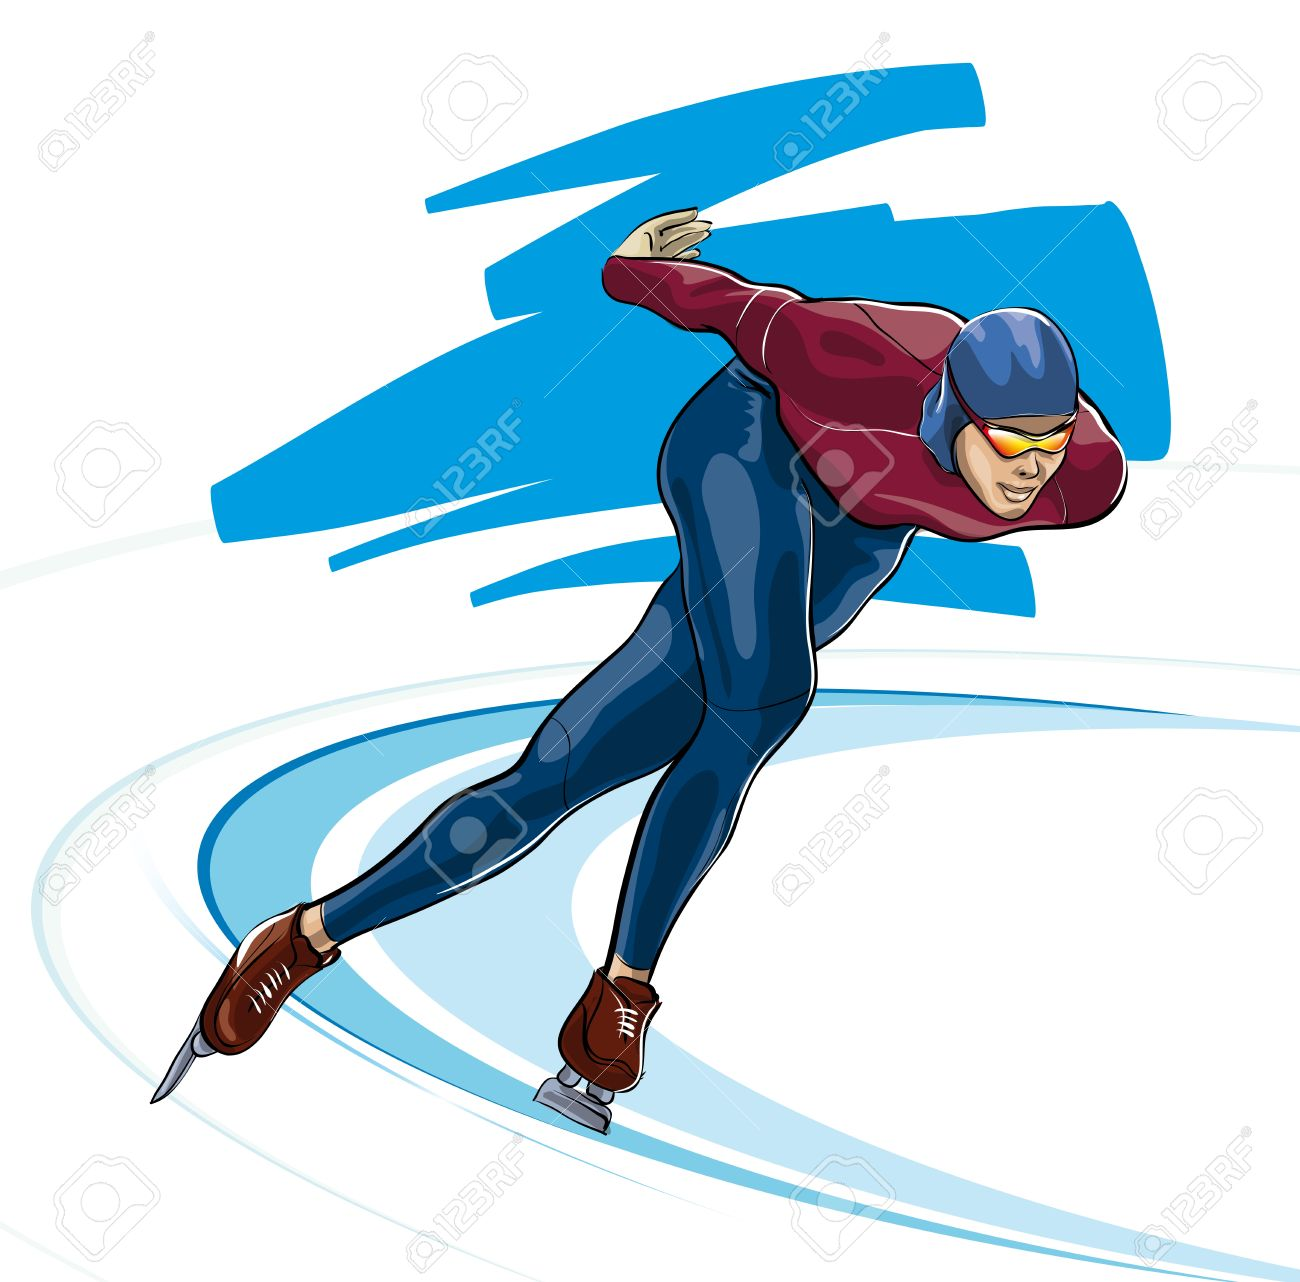 Speed skating clipart.